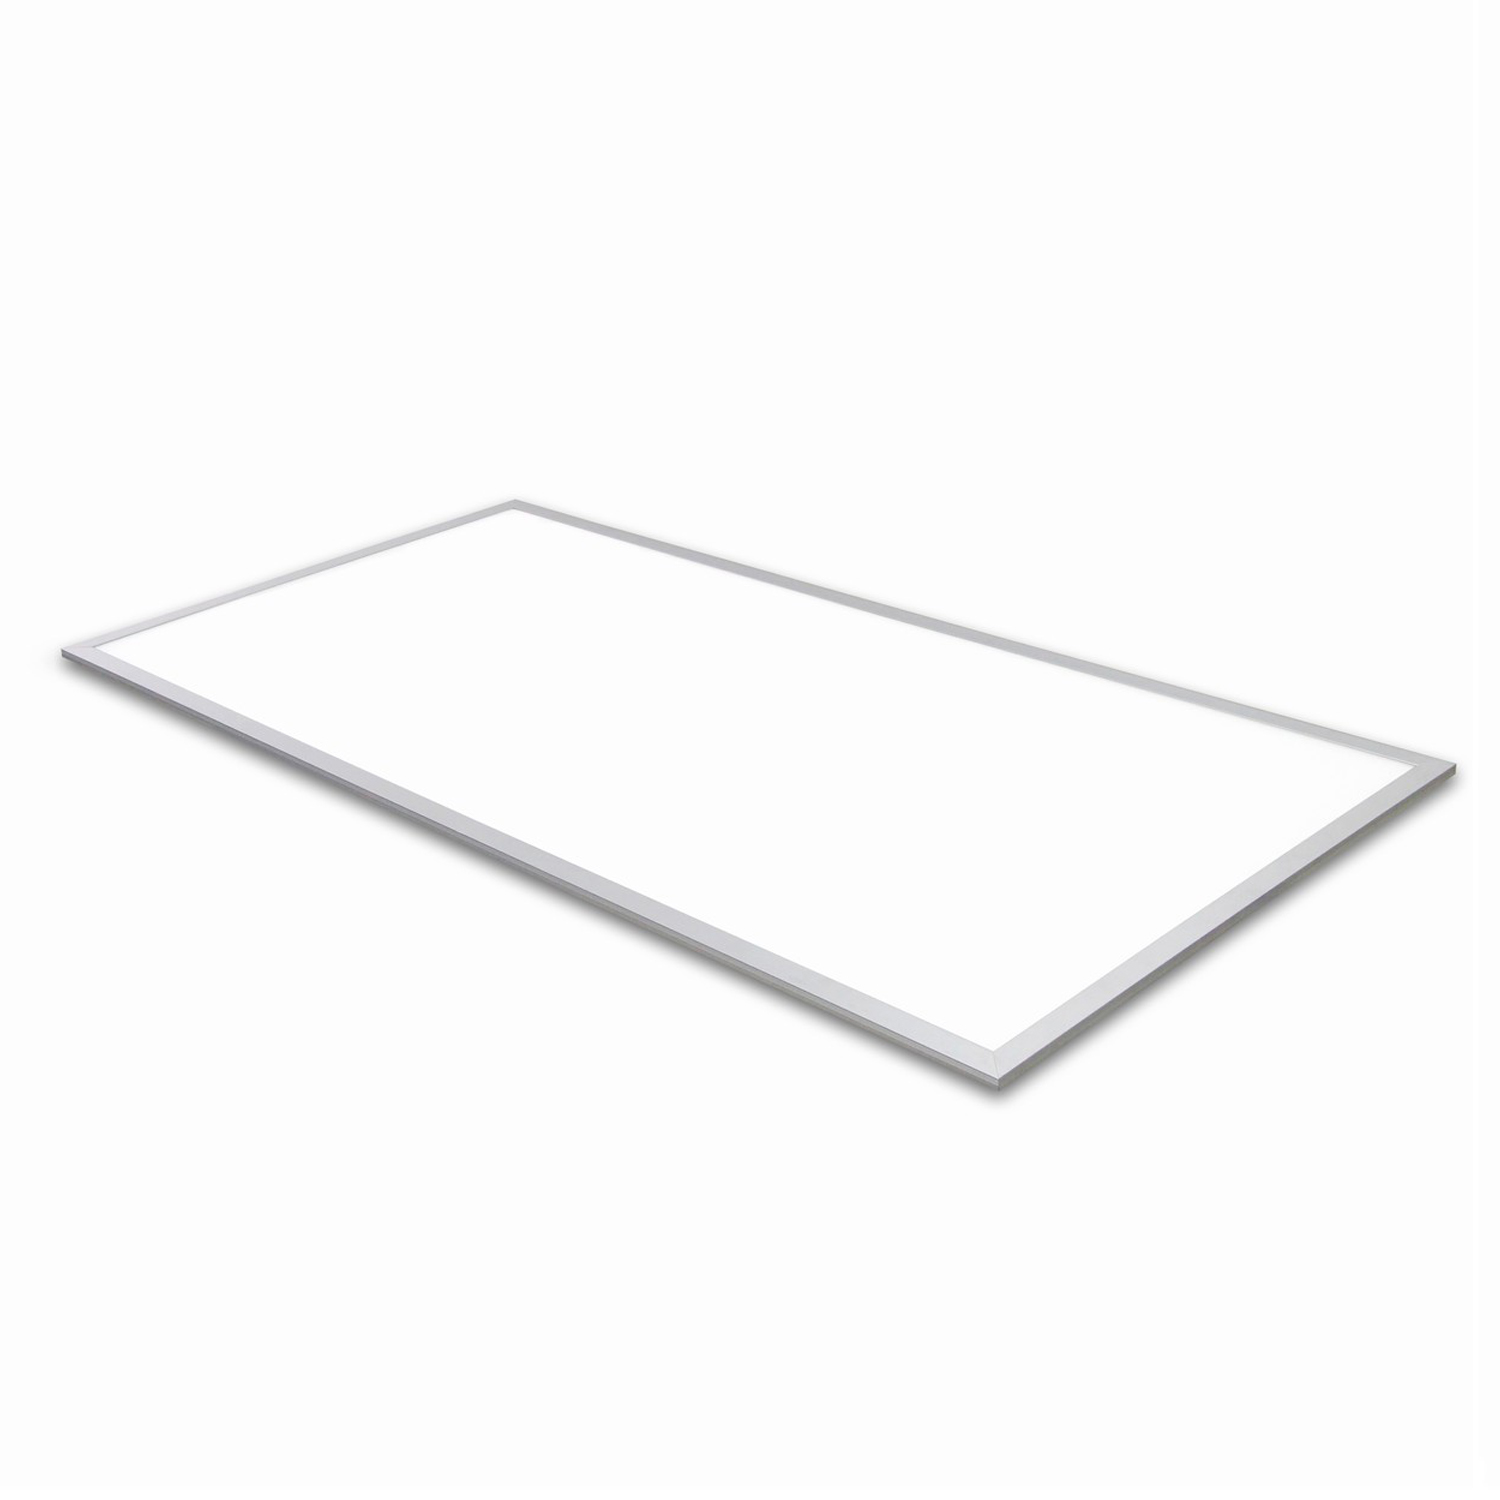 Panel Light 60w Led Panel Light Fixture 2ft X 4ft Socal Led Lighting